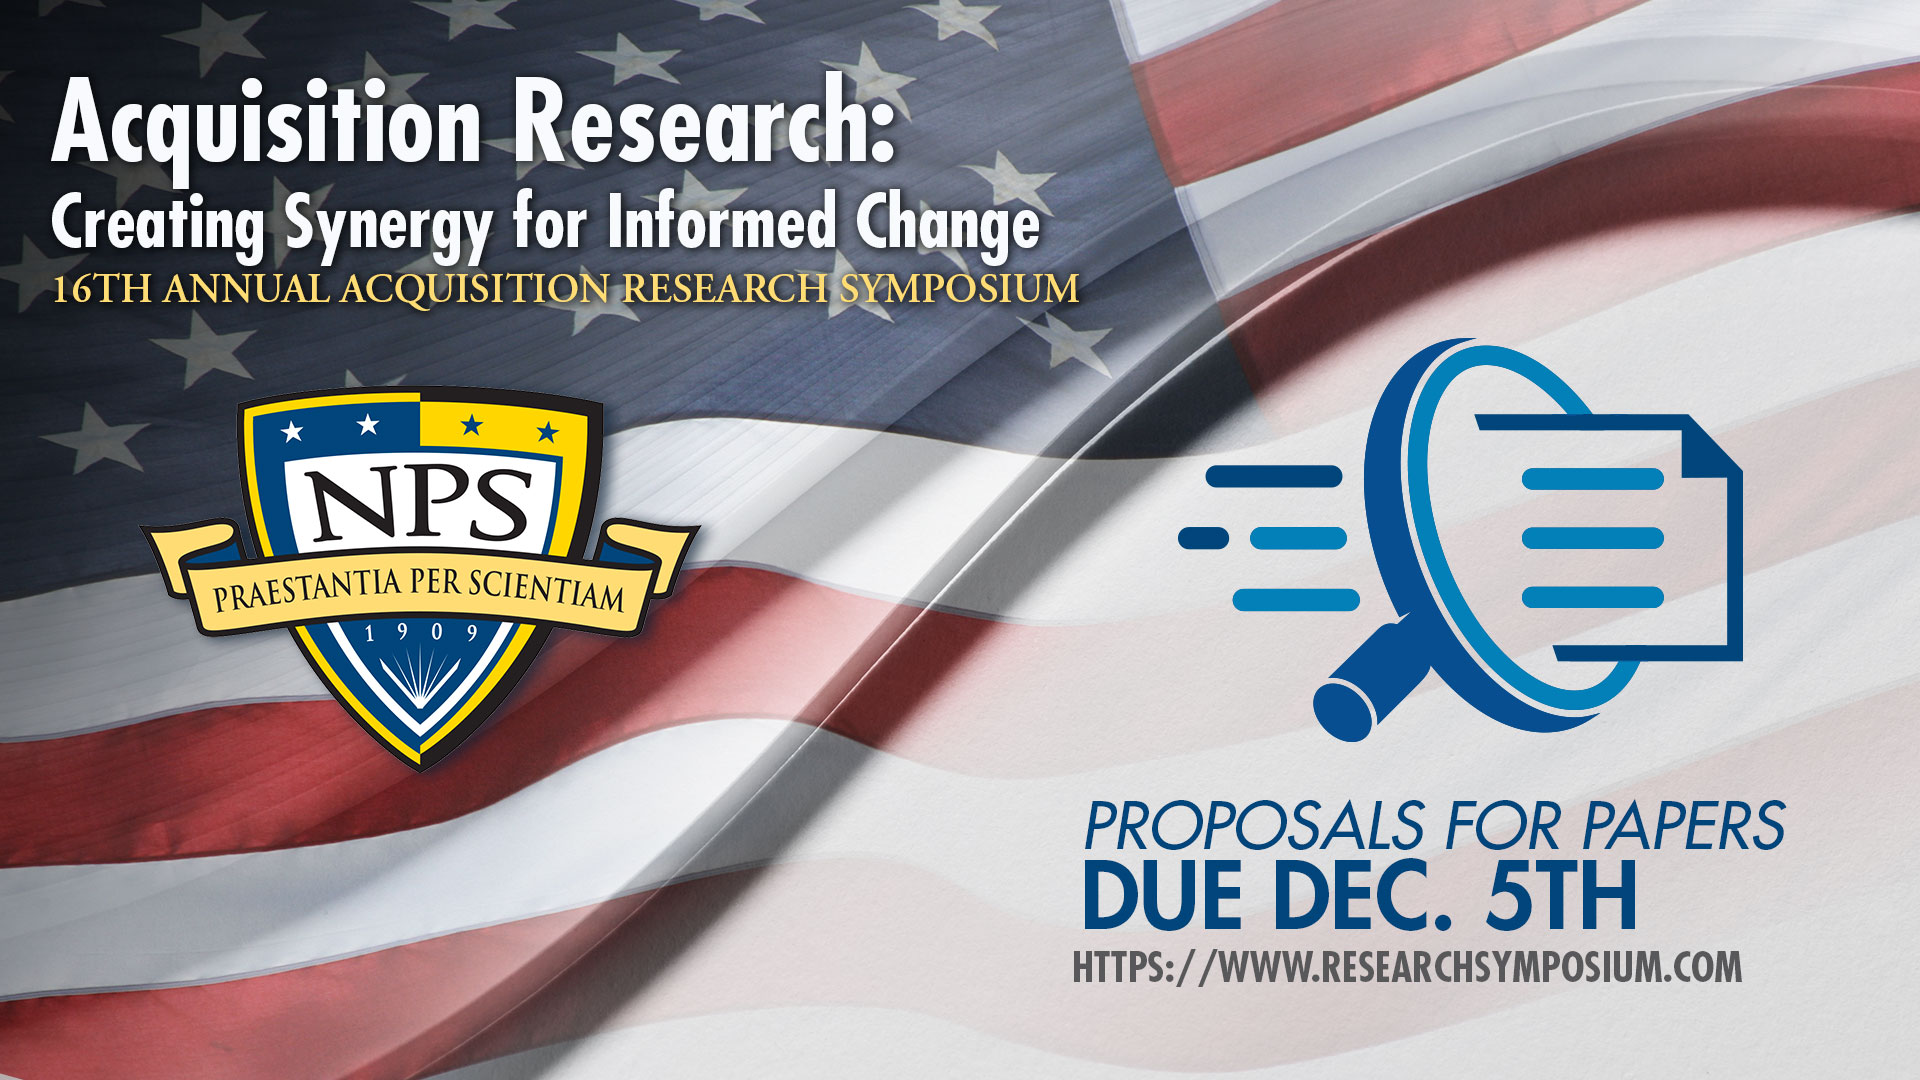 nps acquisition research symposium wants your ideas usaasc